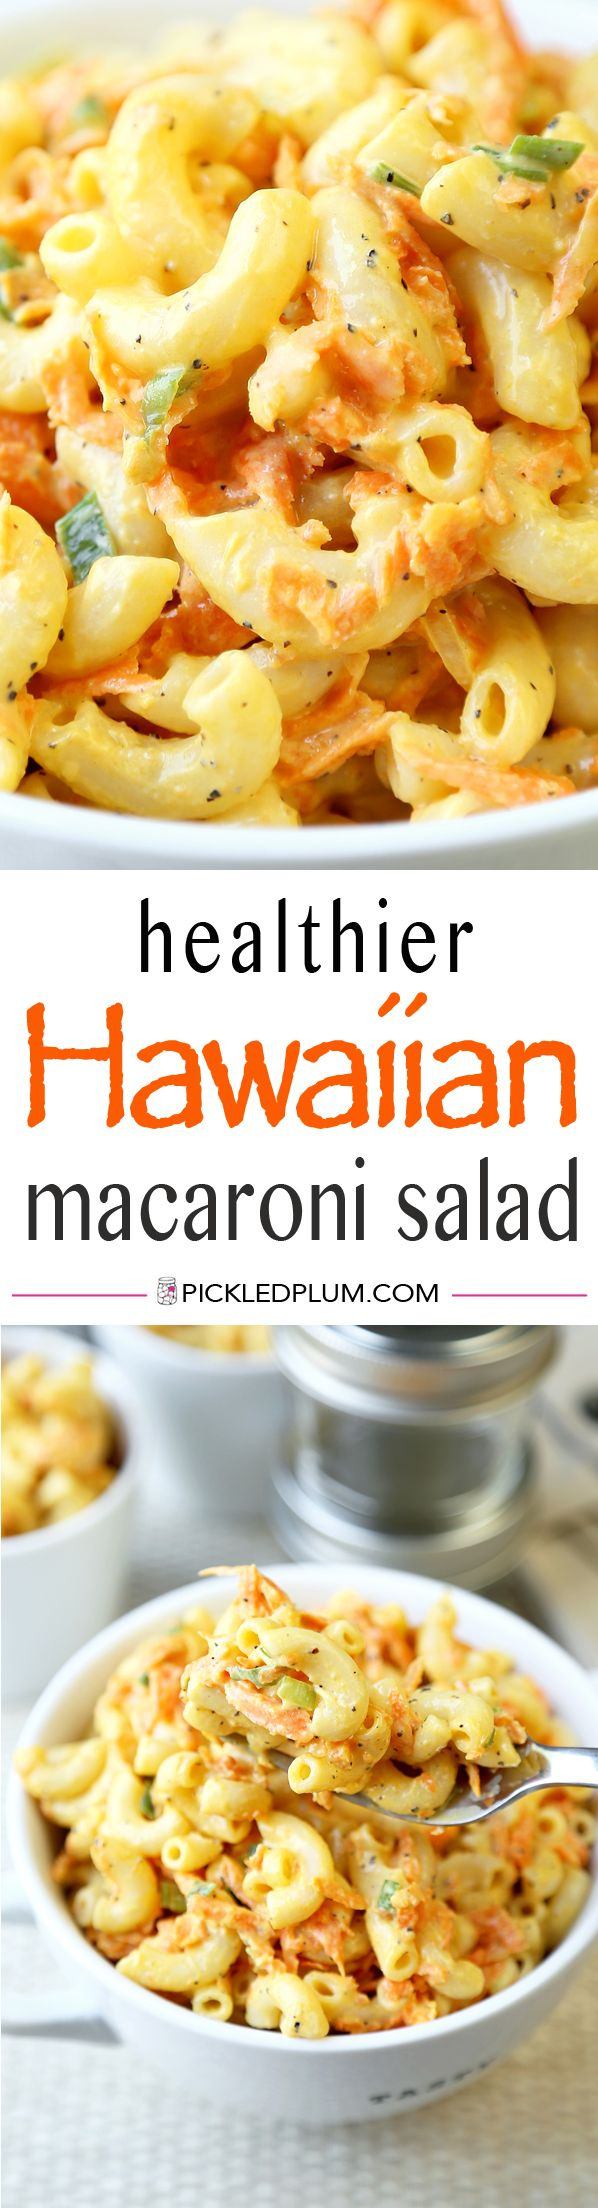 Healthier Hawaiian Macaroni Salad Recipe - tangy, sweet and creamy but with half the fat! Gluten free http://www.pickledplum.com/healthier-hawaiian-macaroni-salad/